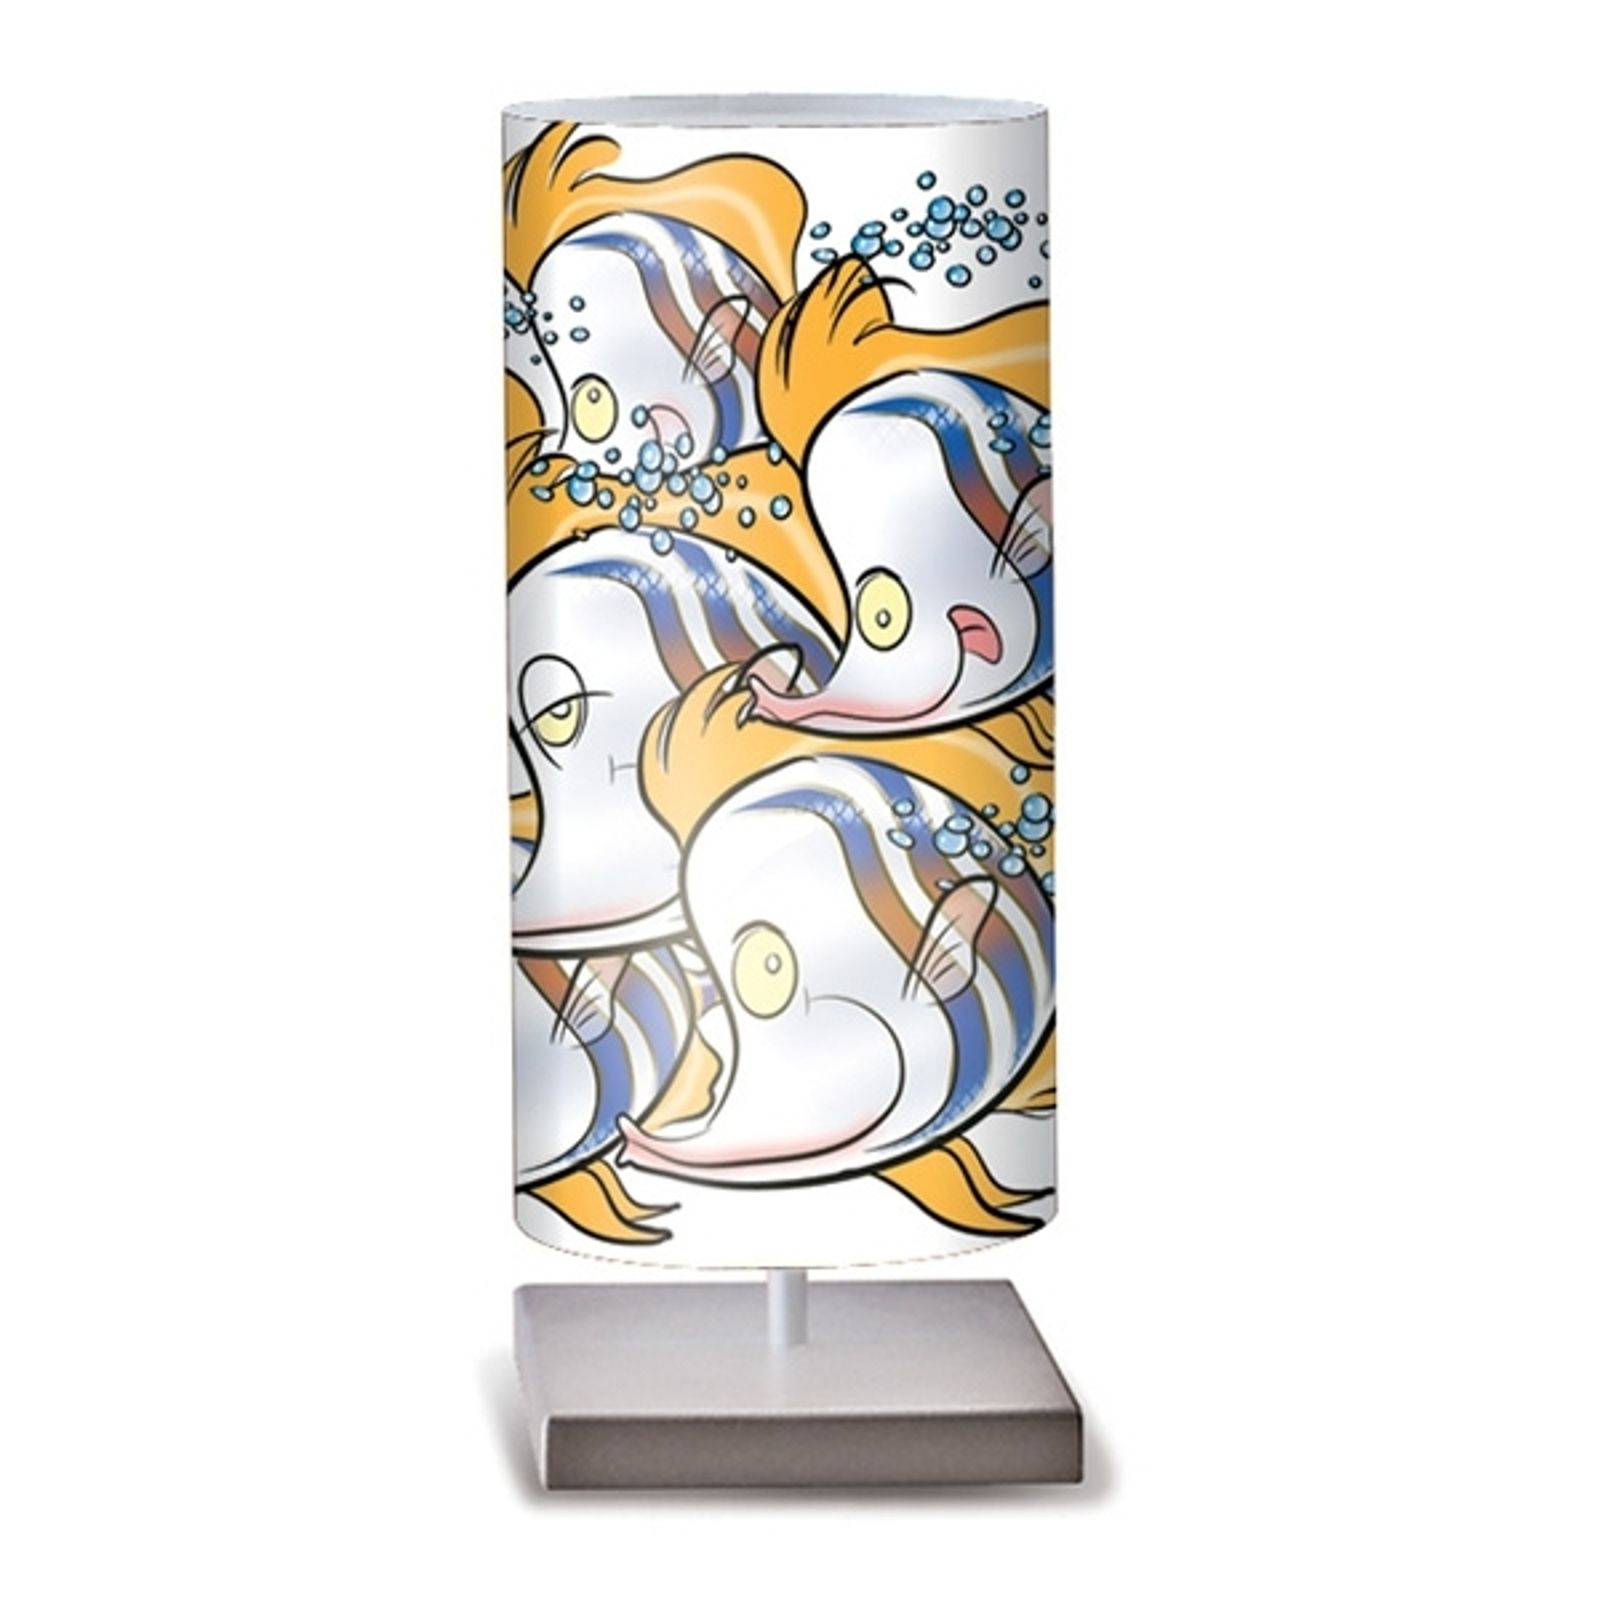 Adorable table lamp Pesci_1056058_1